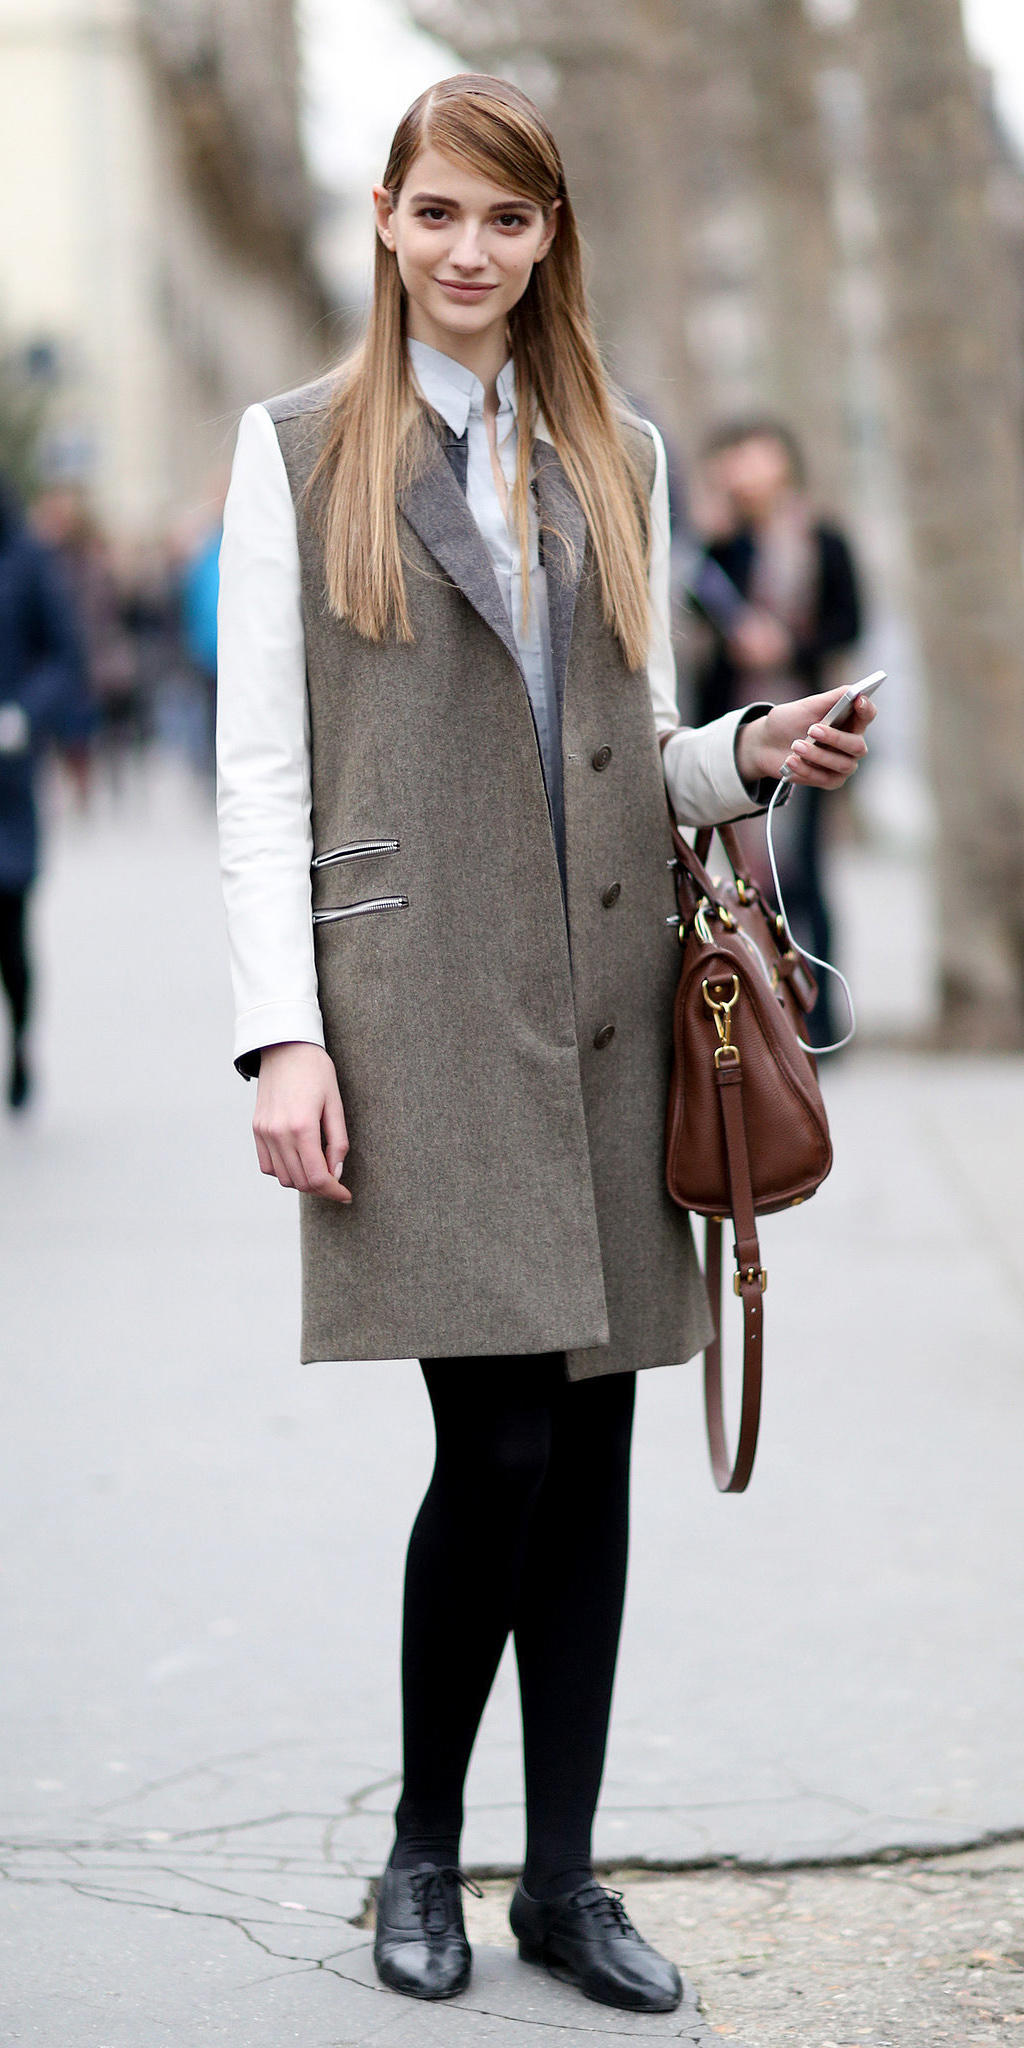 black-mini-skirt-white-collared-shirt-tan-vest-tailor-black-tights-black-shoe-brogues-cognac-bag-howtowear-fashion-style-outfit-fall-winter-blonde-work.jpg